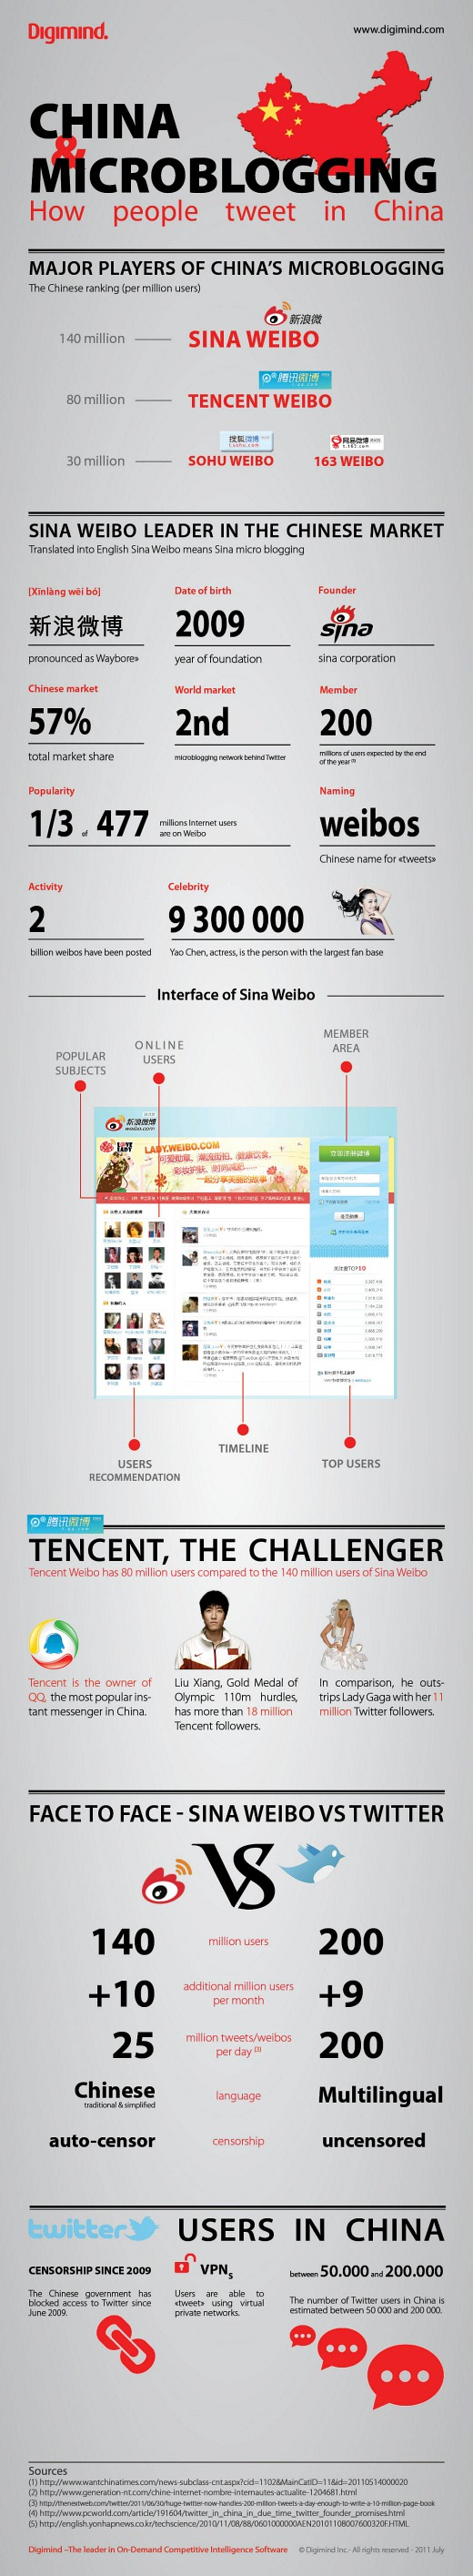 digimind-infographics-weibo-tc520